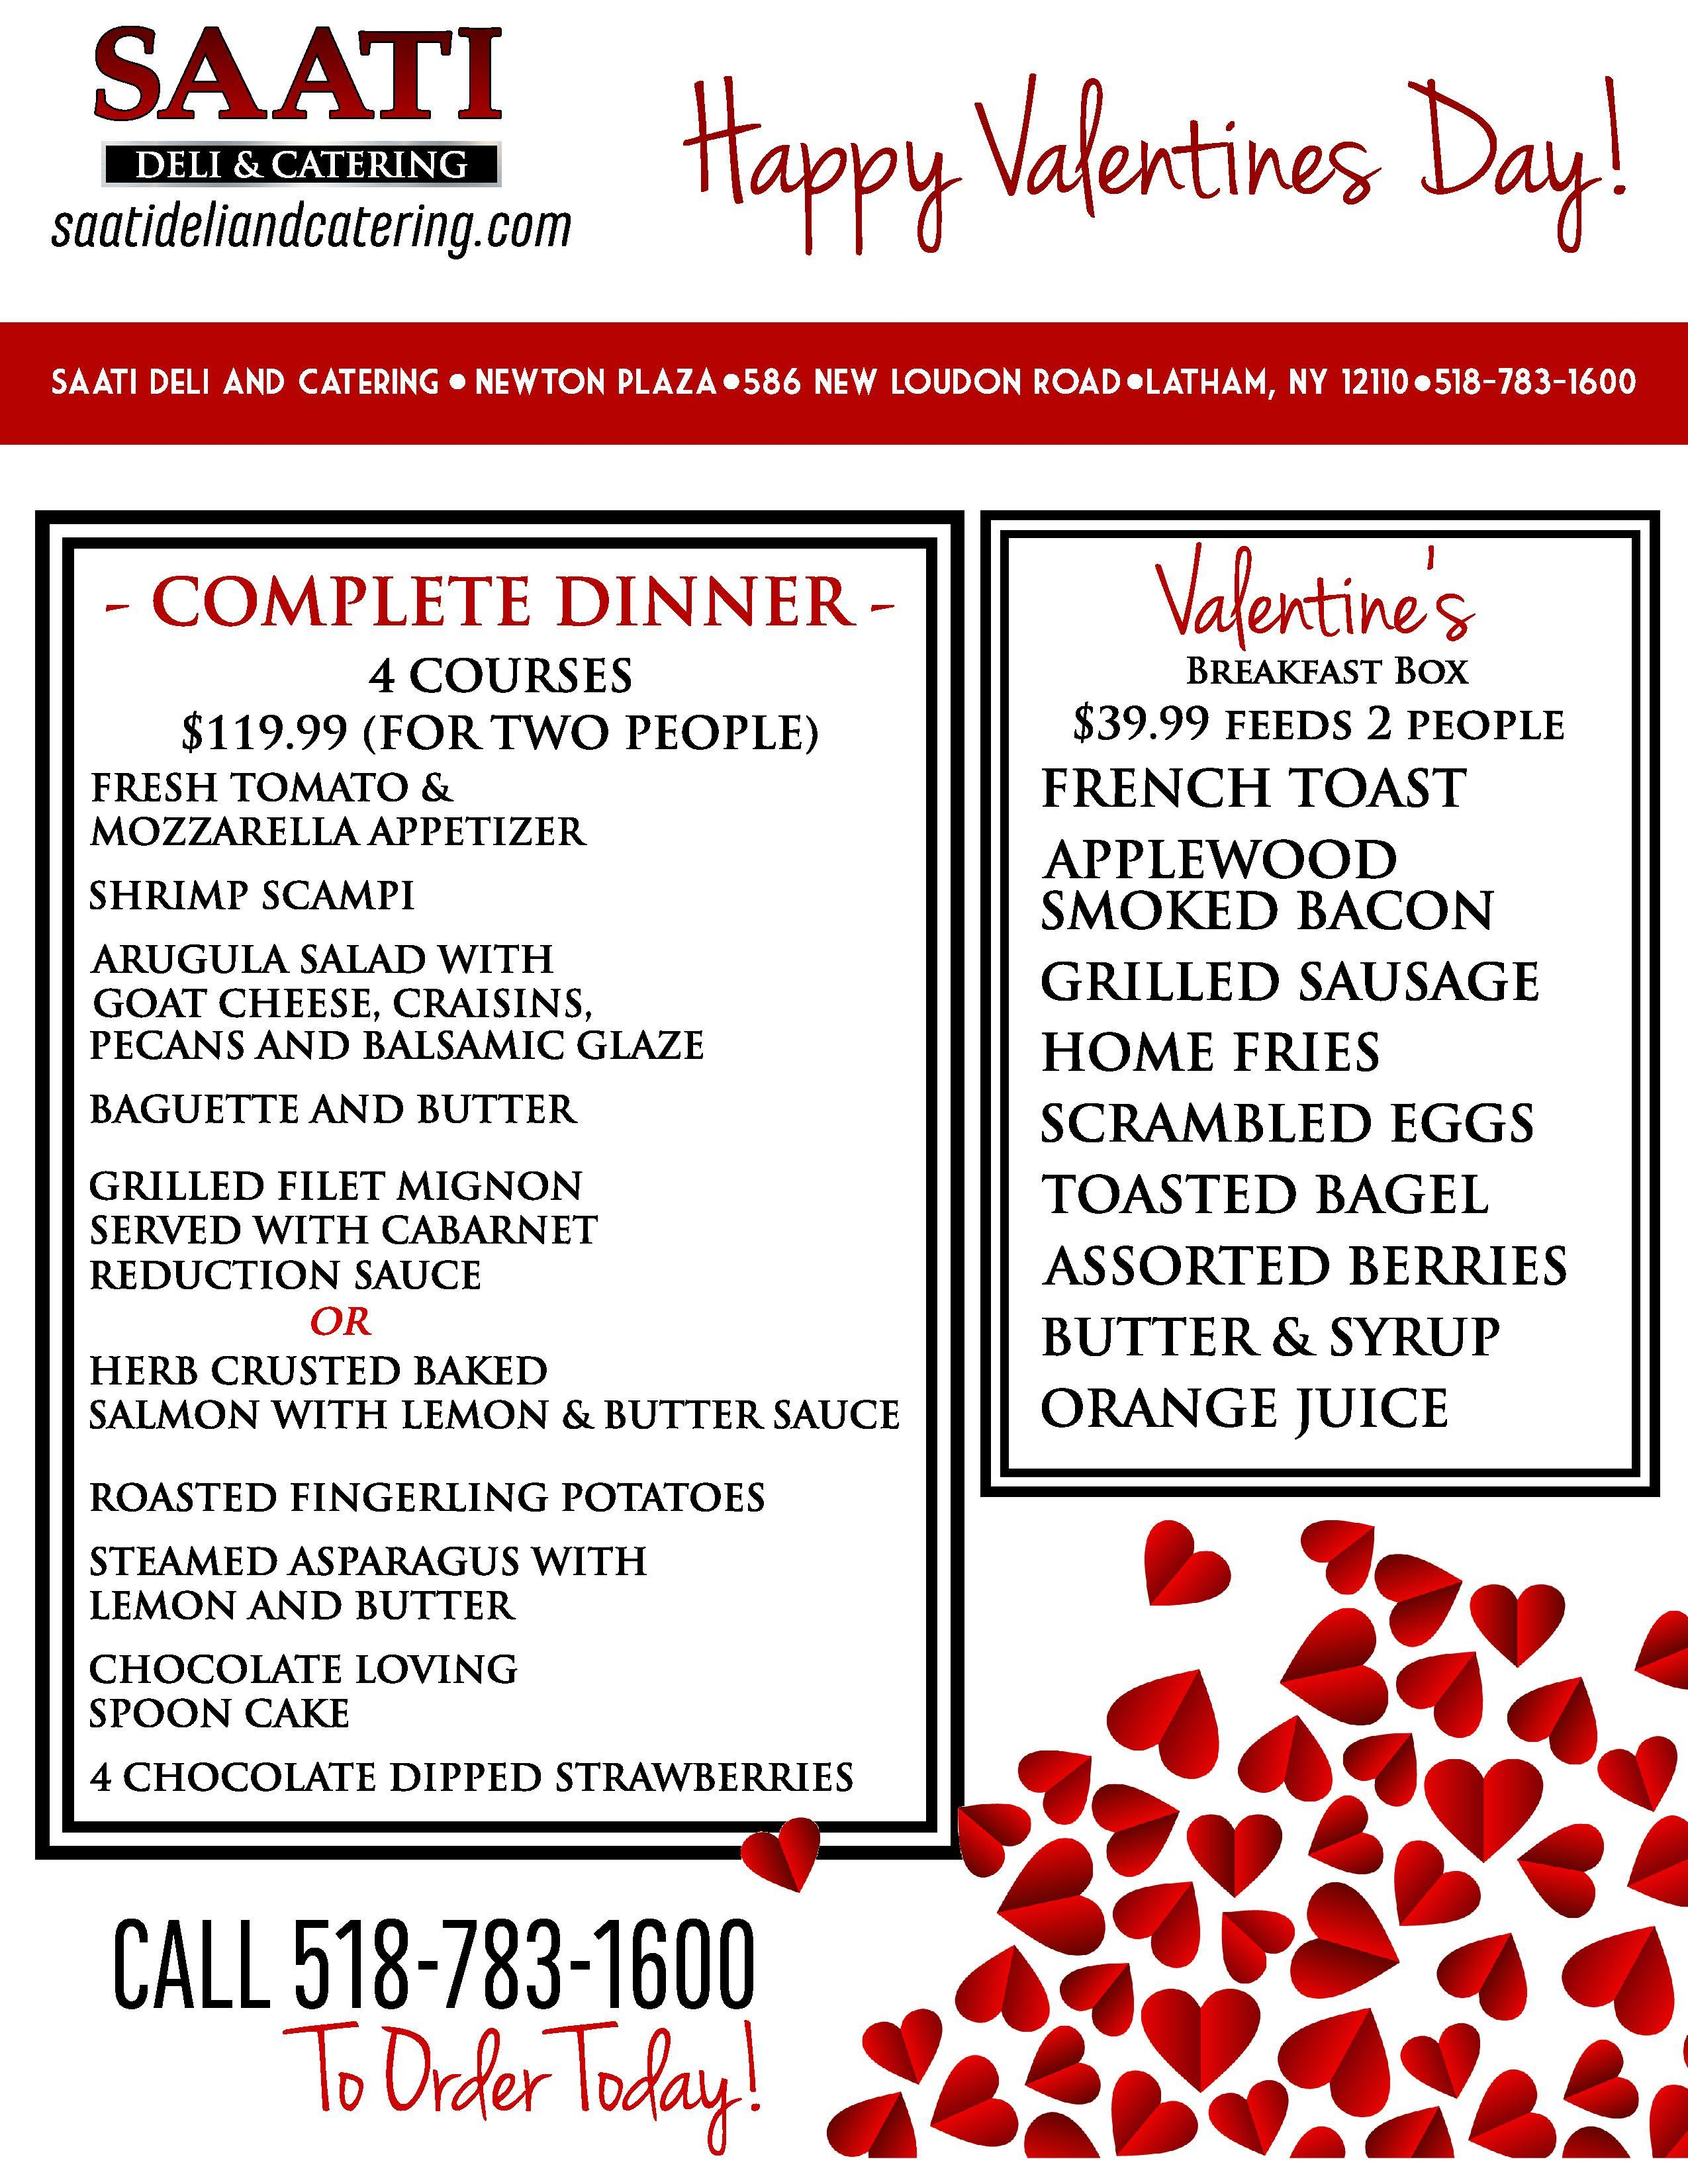 Happy Valentine's Day!  Complete Dinner 4 Courses $119.99 (For Two People) Fresh Tomato & Mozzarella Appetizer Shrimp Scampi Arugula Salad with Goat Cheese, Craisins, Pecans and Balsamic Glaze Baguette And Butter Grilled Filet Mignon served with Cabarnet Reduction Sauce  Or  Herb Crusted Baked Salmon with Lemon & Butter Sauce Roasted Fingerling Potatoes Steamed Asparagus With Lemon And Butter Chocolate Loving Spoon Cake 4 Chocolate Dipped Strawberries  Valentine's Day Breakfast Box $39.99 Feeds 2 People French Toast Applewood Smoked Bacon Grilled Sausage Home Fries Scrambled Eggs Toasted Bagel Assorted Berries Butter & Syrup Orange Juice